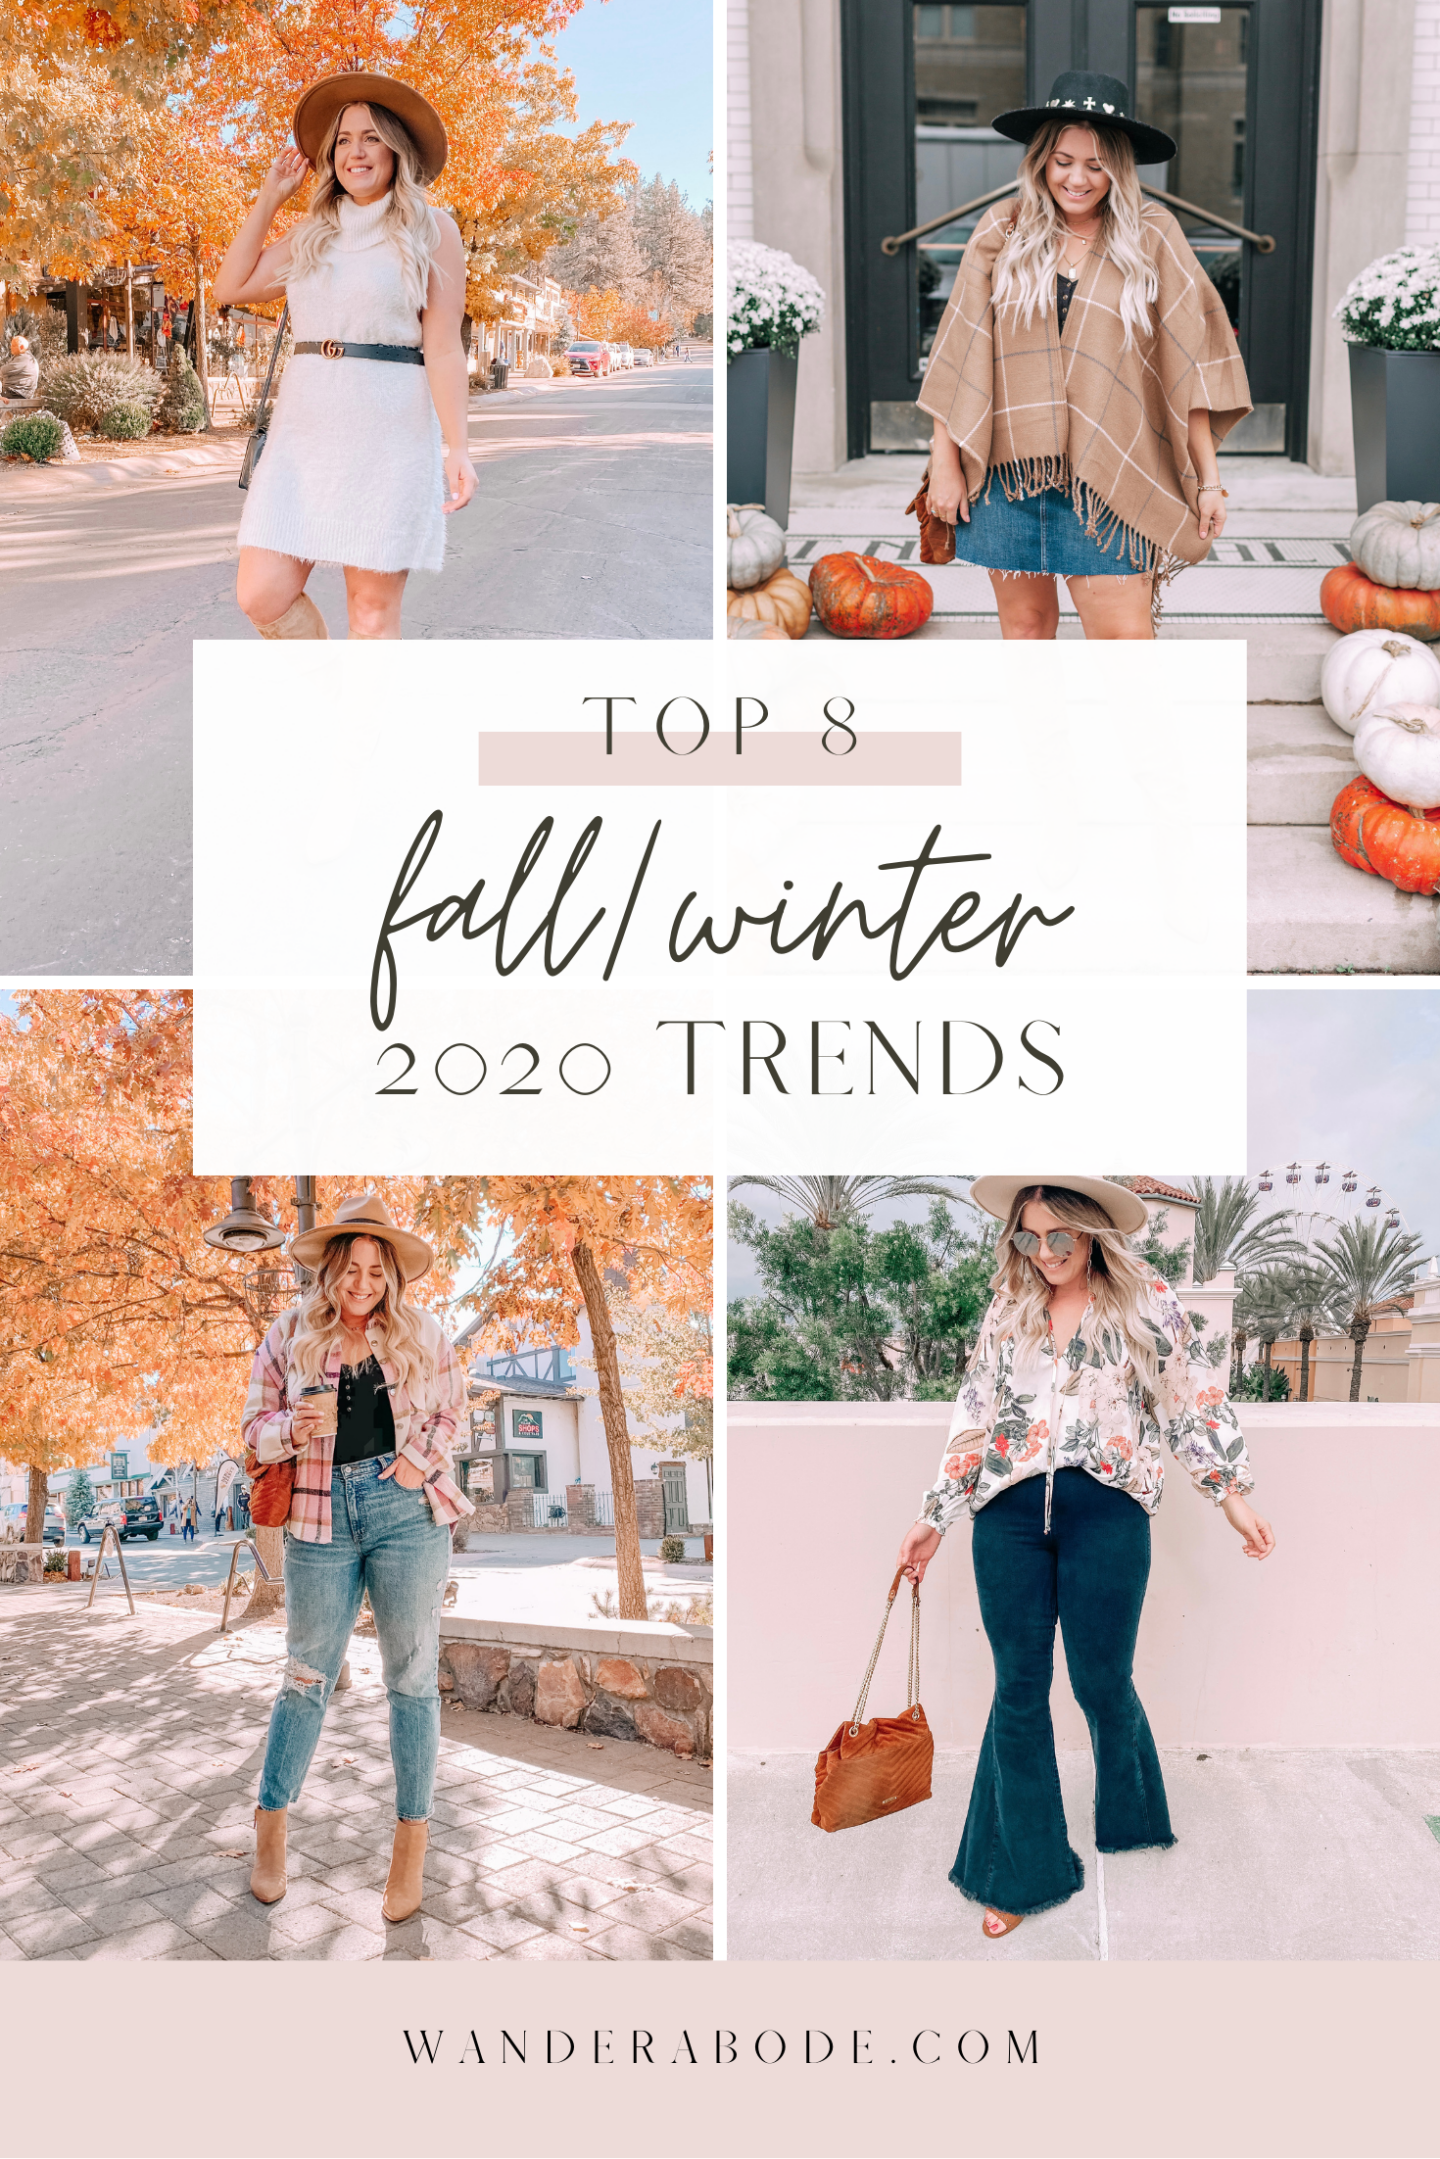 TOP 8 FALL/WINTER 2020 TRENDS